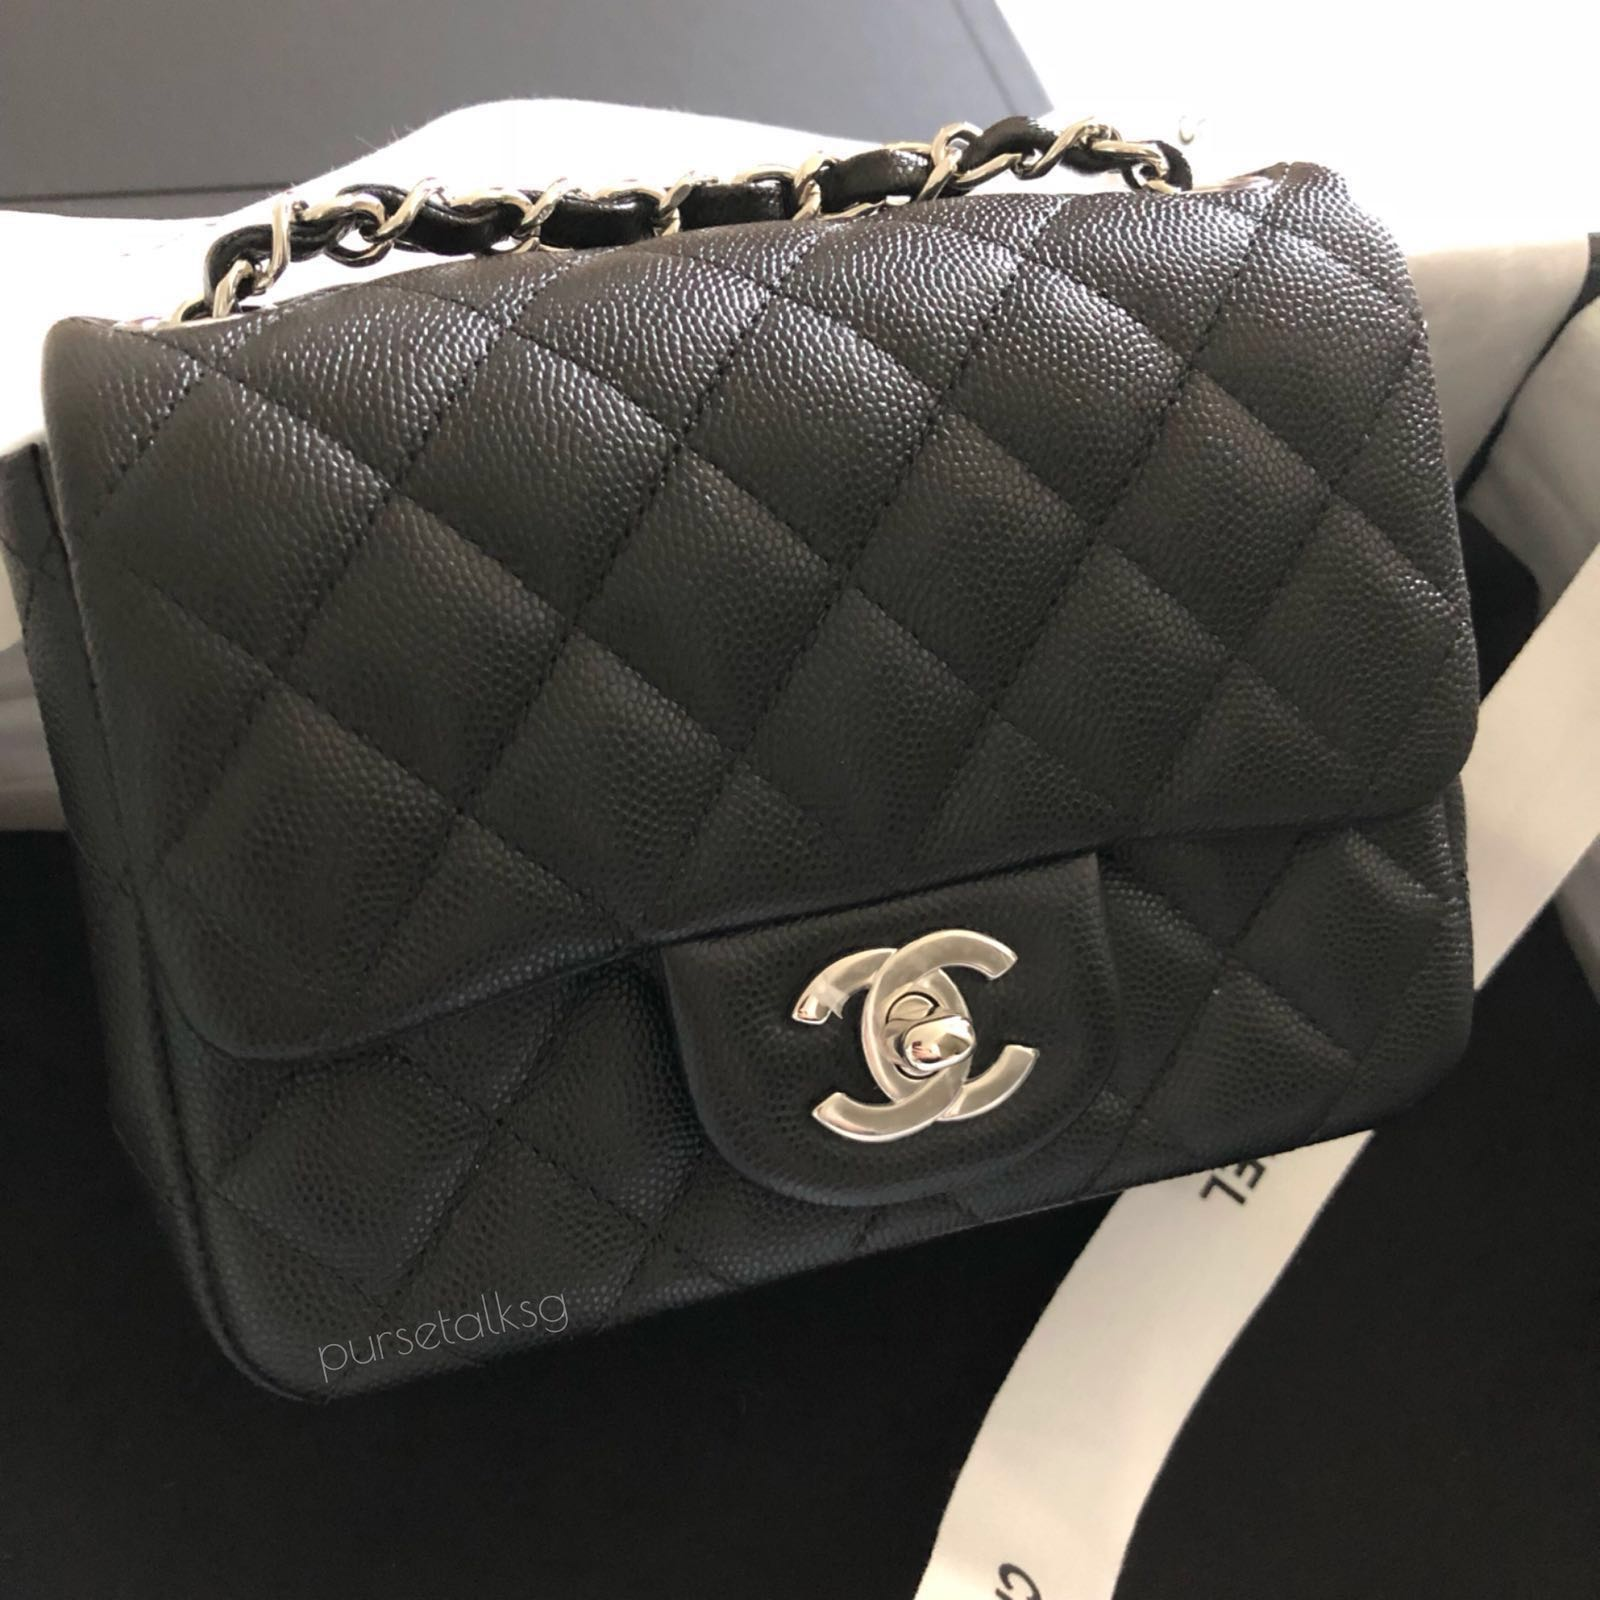 9fa404320a0f Chanel Black Mini Square SHW, Luxury, Bags & Wallets, Sling Bags on ...